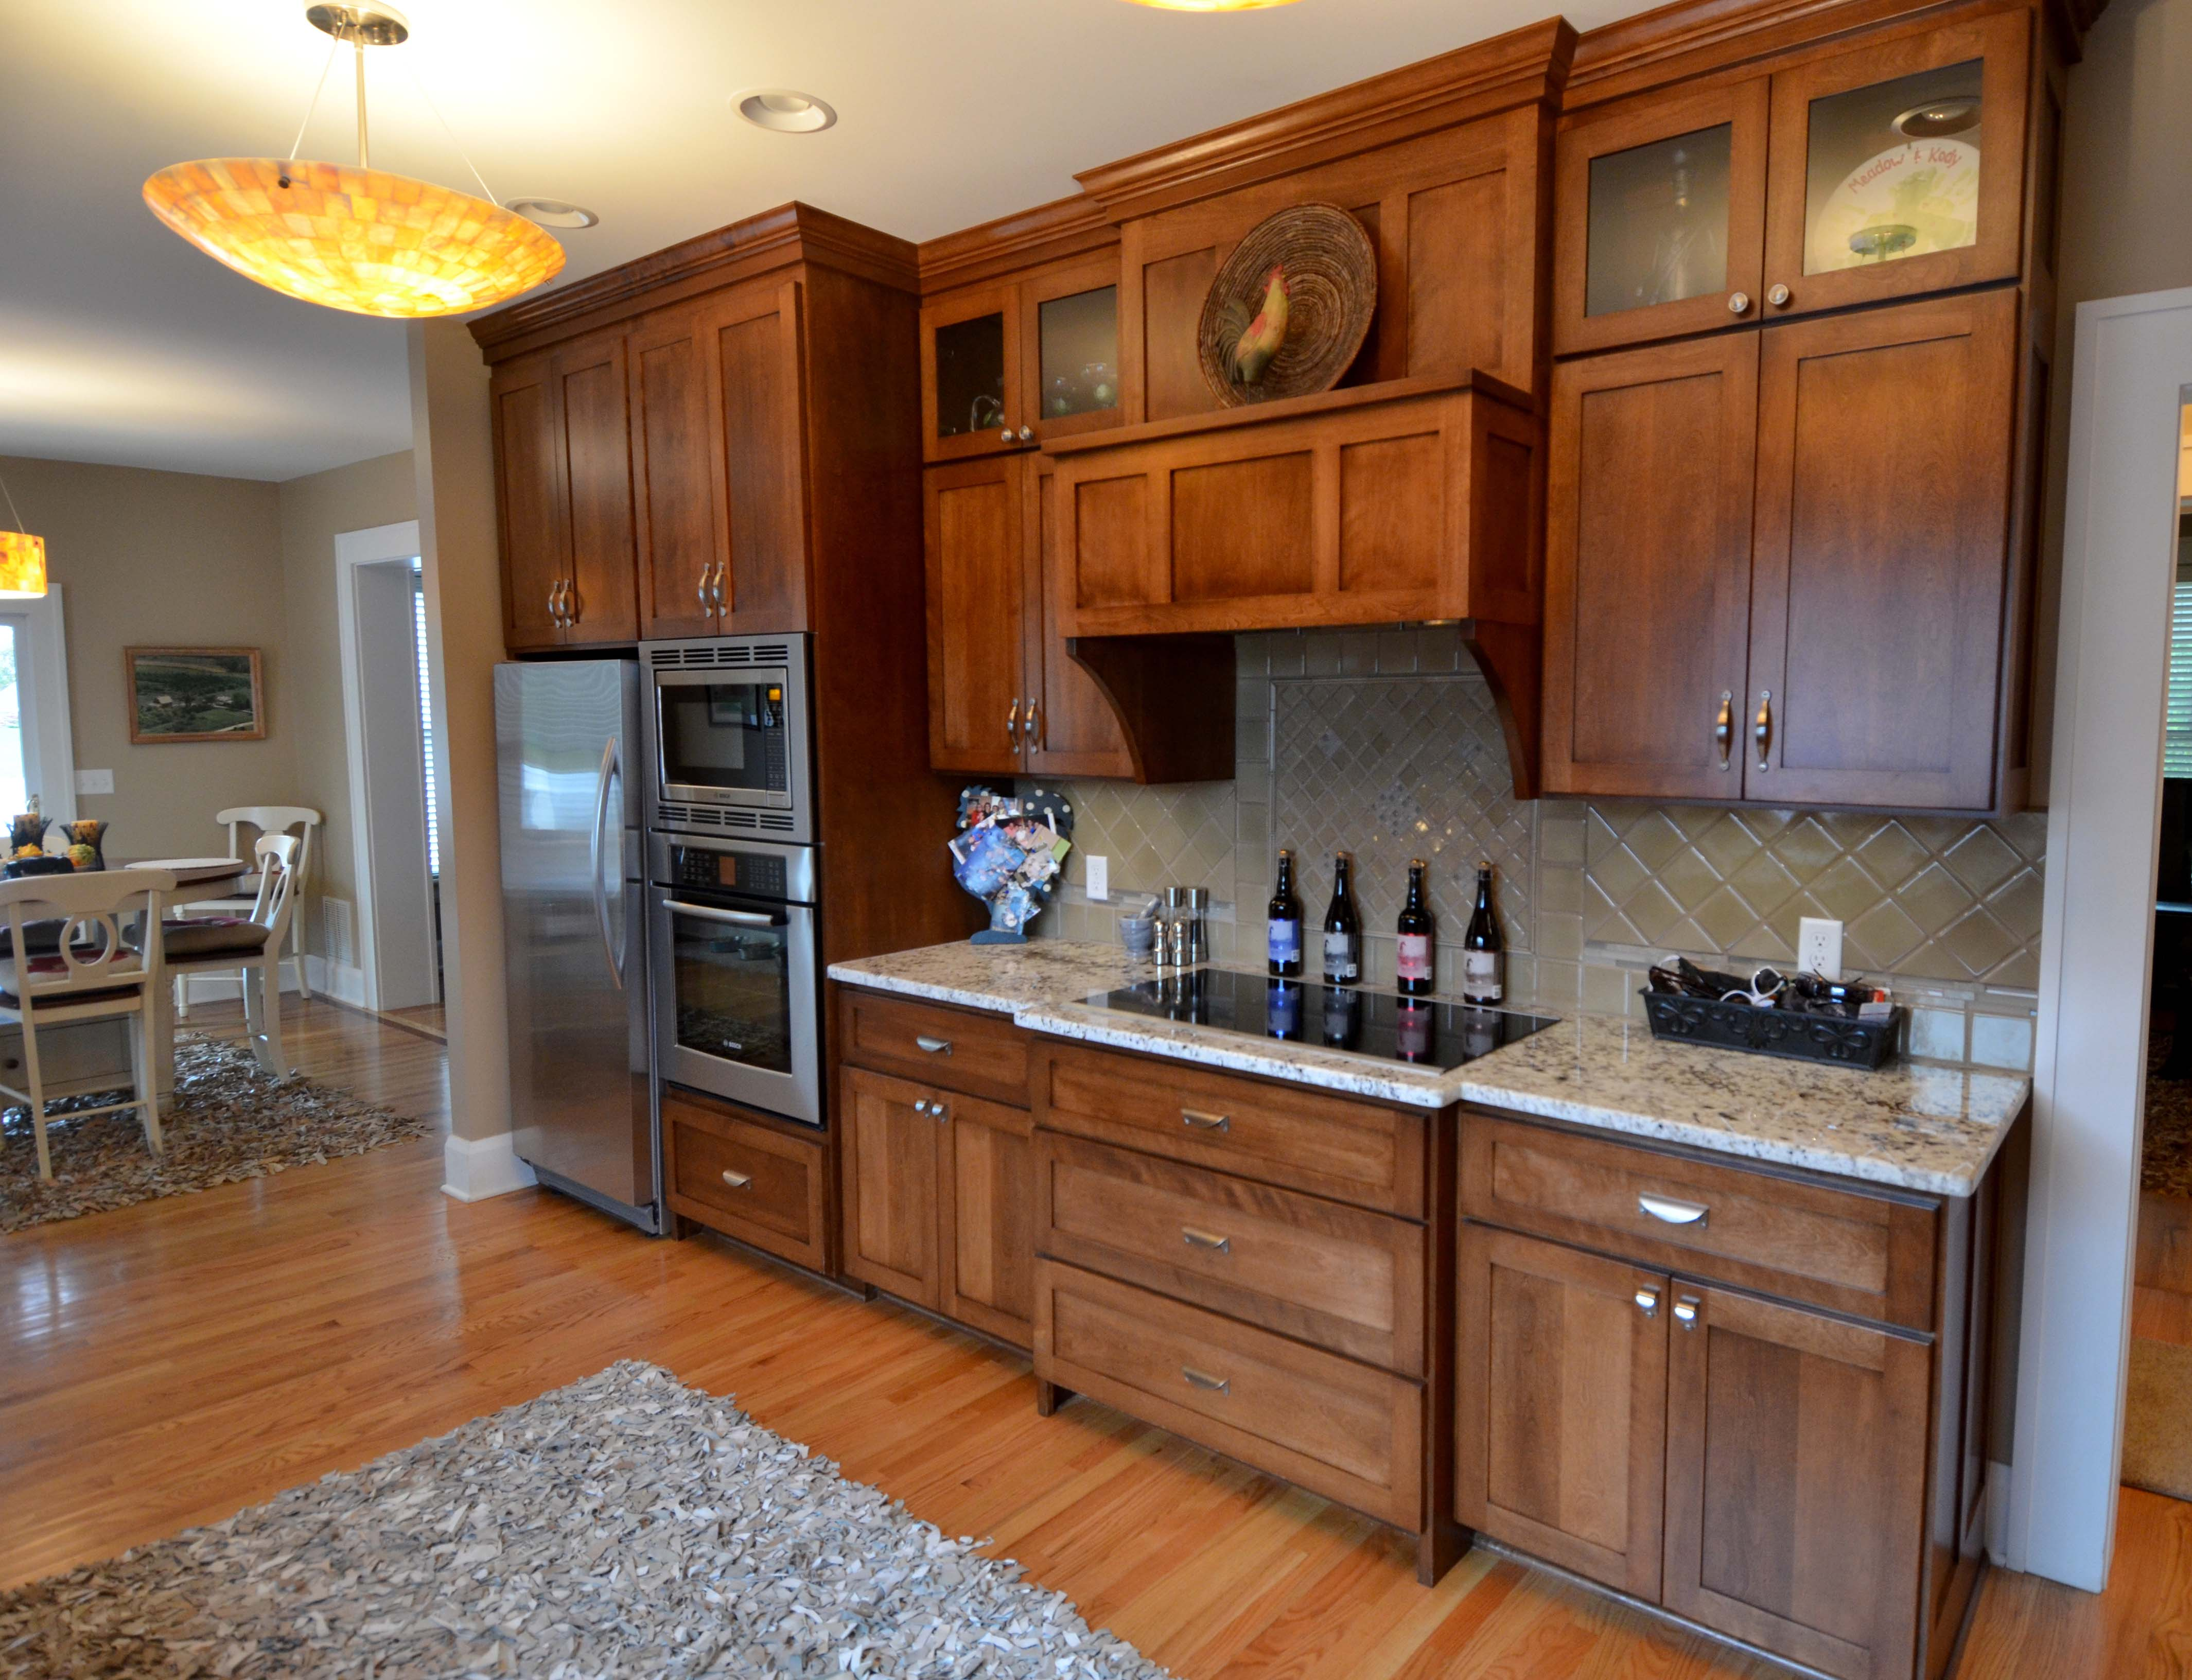 Rich Birch Shaker Cabinets Welcome Friends And Family Into This Ious Gallery Style Kitchen Details Abound On The Surface Deep Within Cabinetry